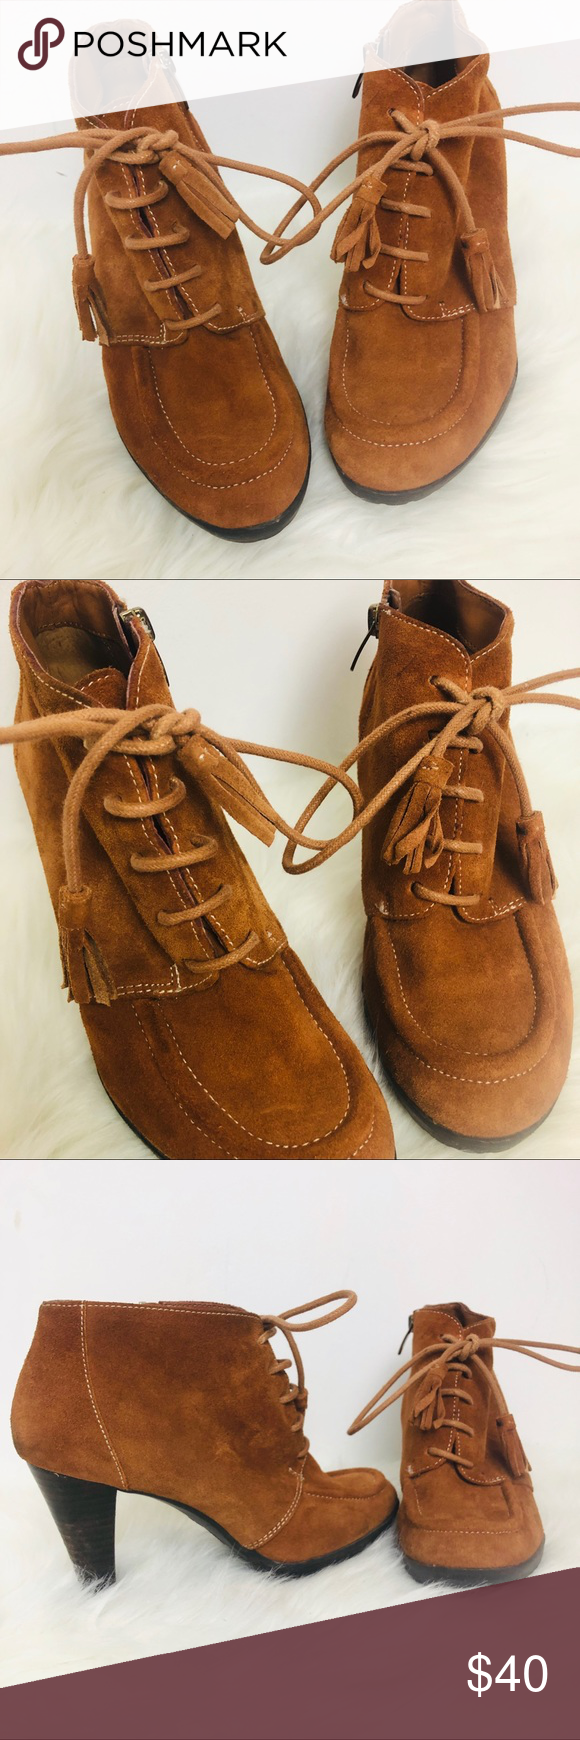 Anne Klein brown ankle boots lace up front S8.5M Annie Klein brown ankle boots zipper closure lace up front with tassels on laces suede very cute would look great with skinny jeans or a pair flare see photos for more details(S148) Anne Klein Shoes Ankle Boots & Booties #skinnyjeansandankleboots